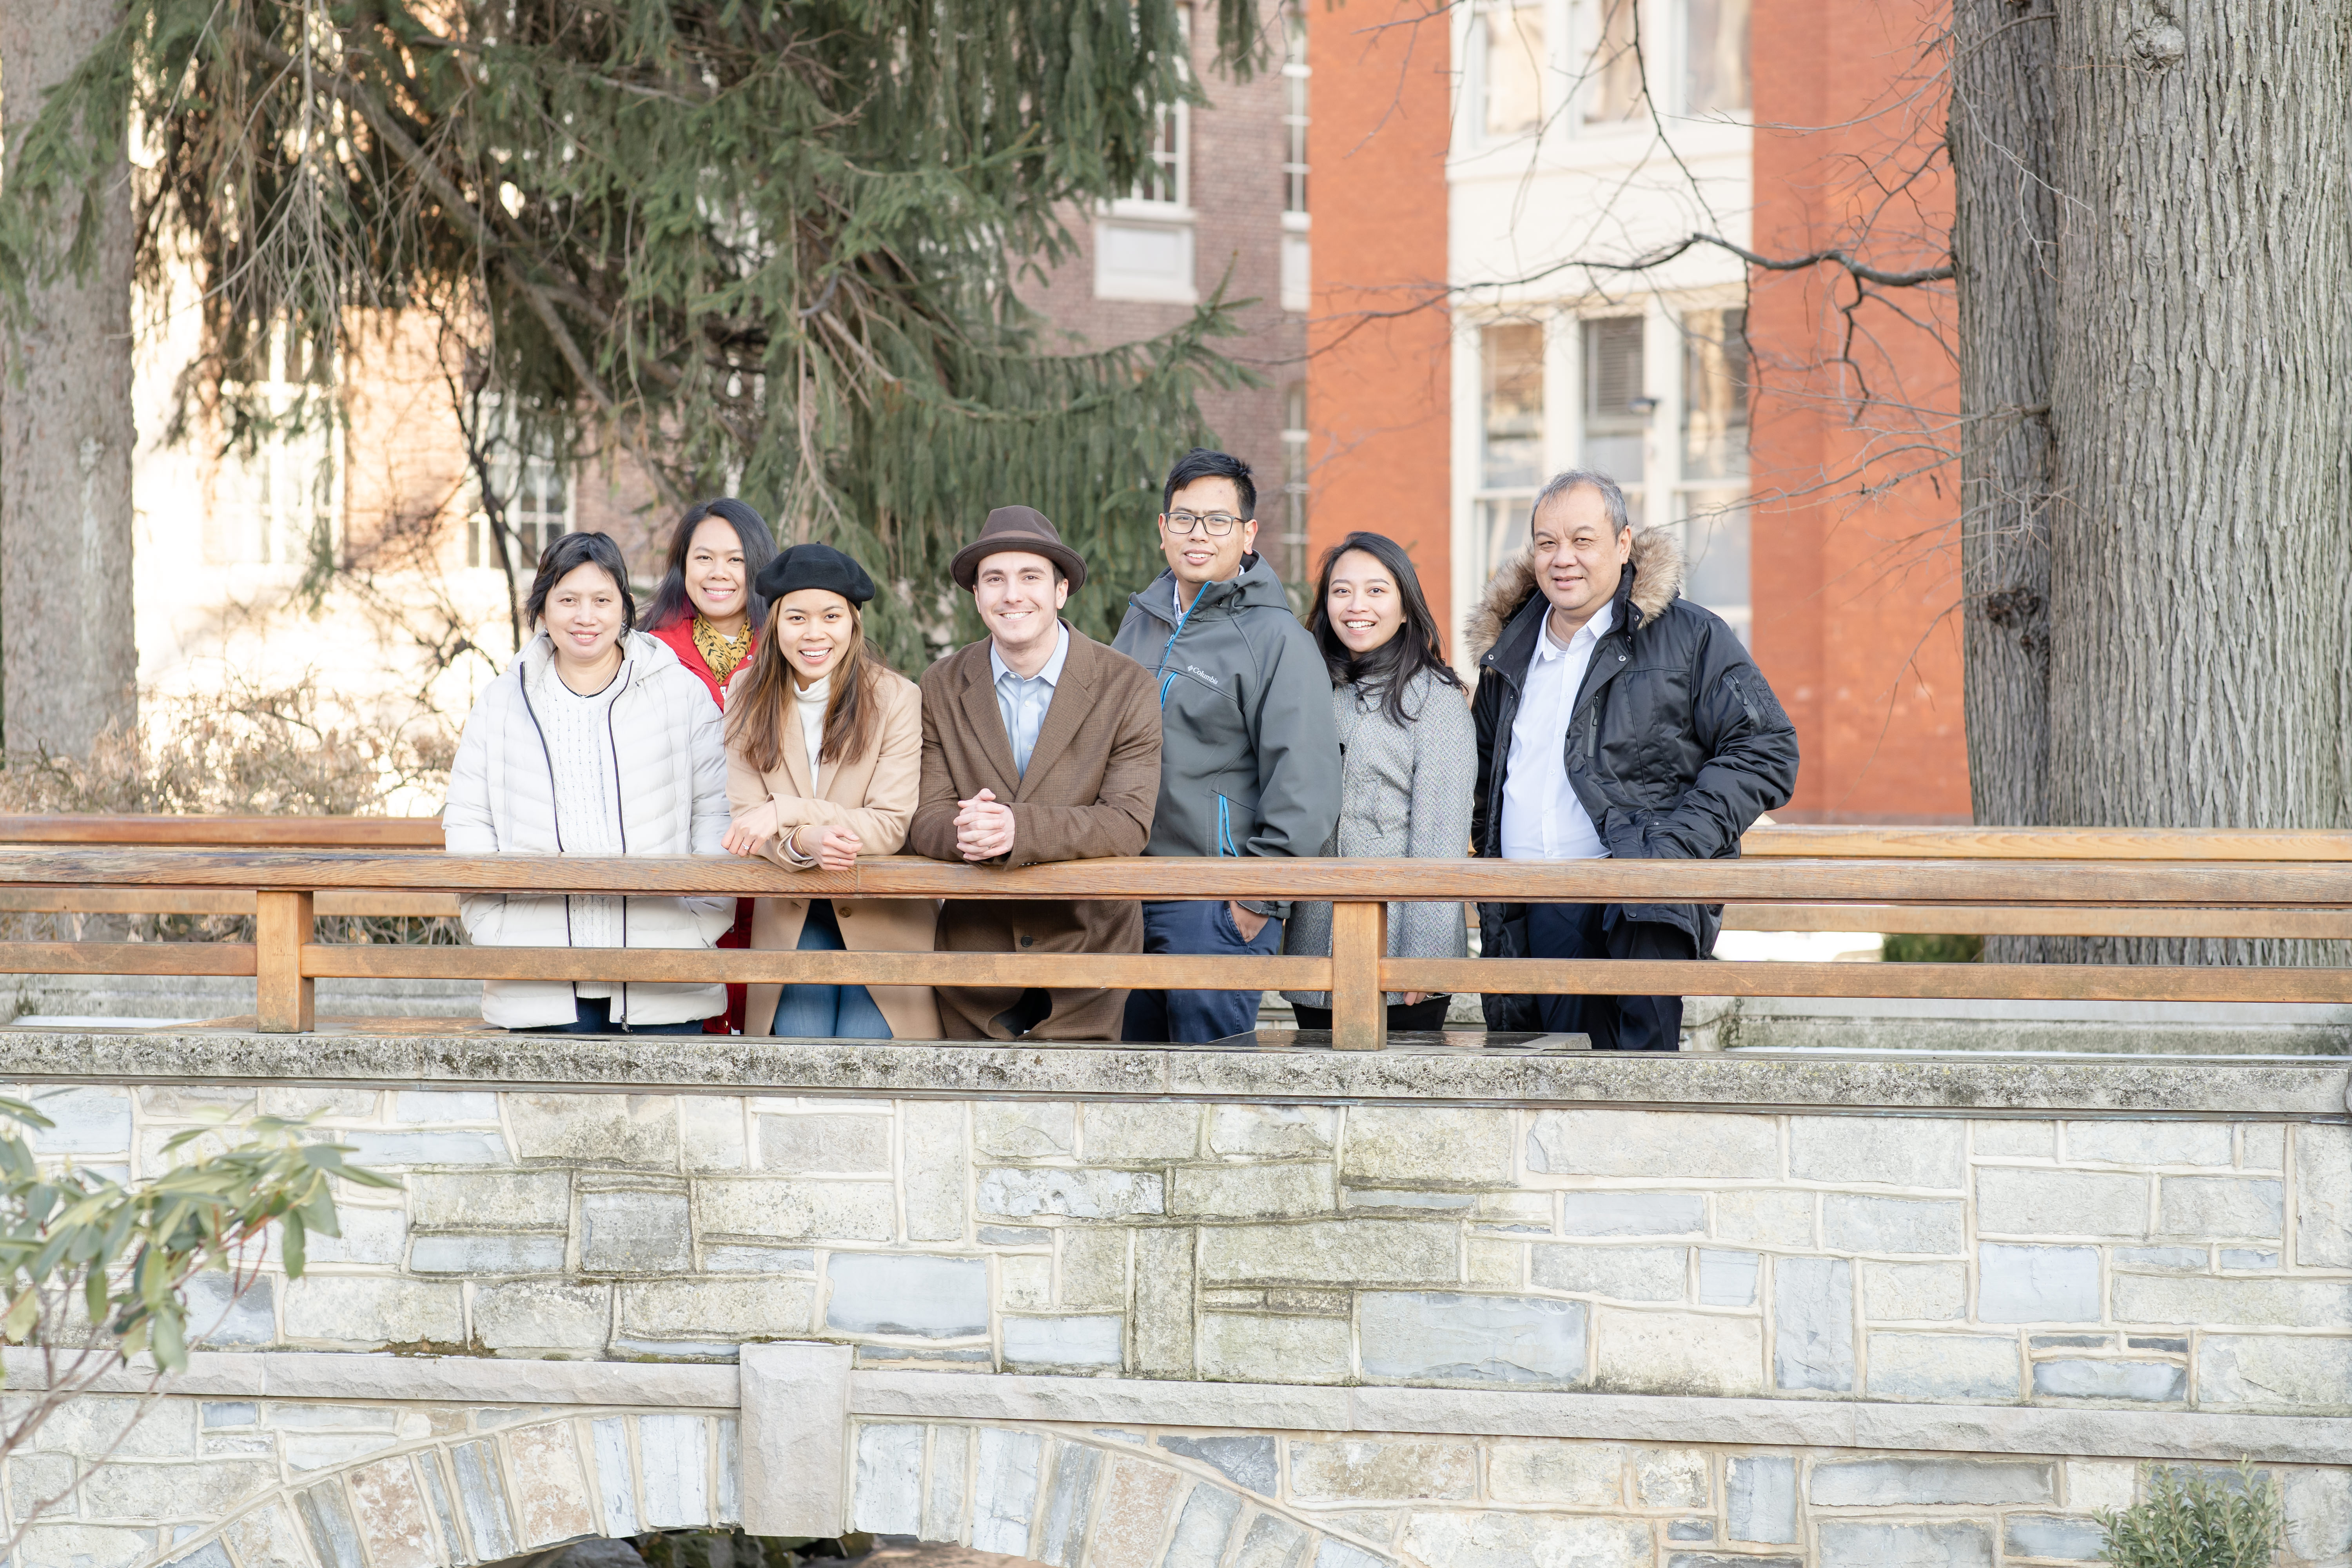 Joyous family celebration at Hintz Alumni Garden bridge